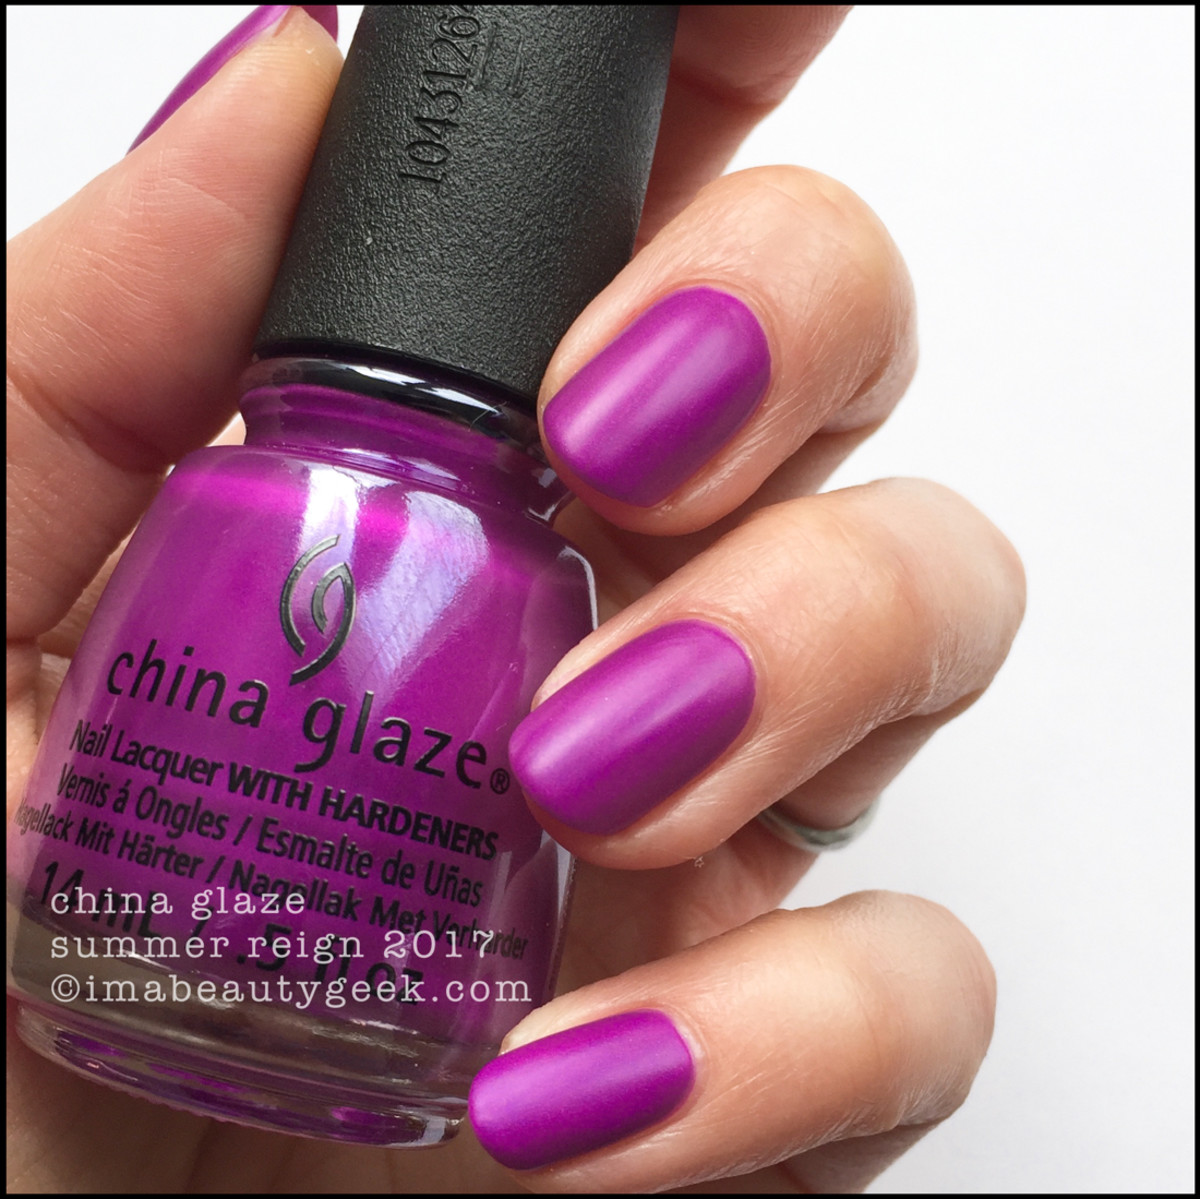 China Glaze Summer Reign no Top Coat